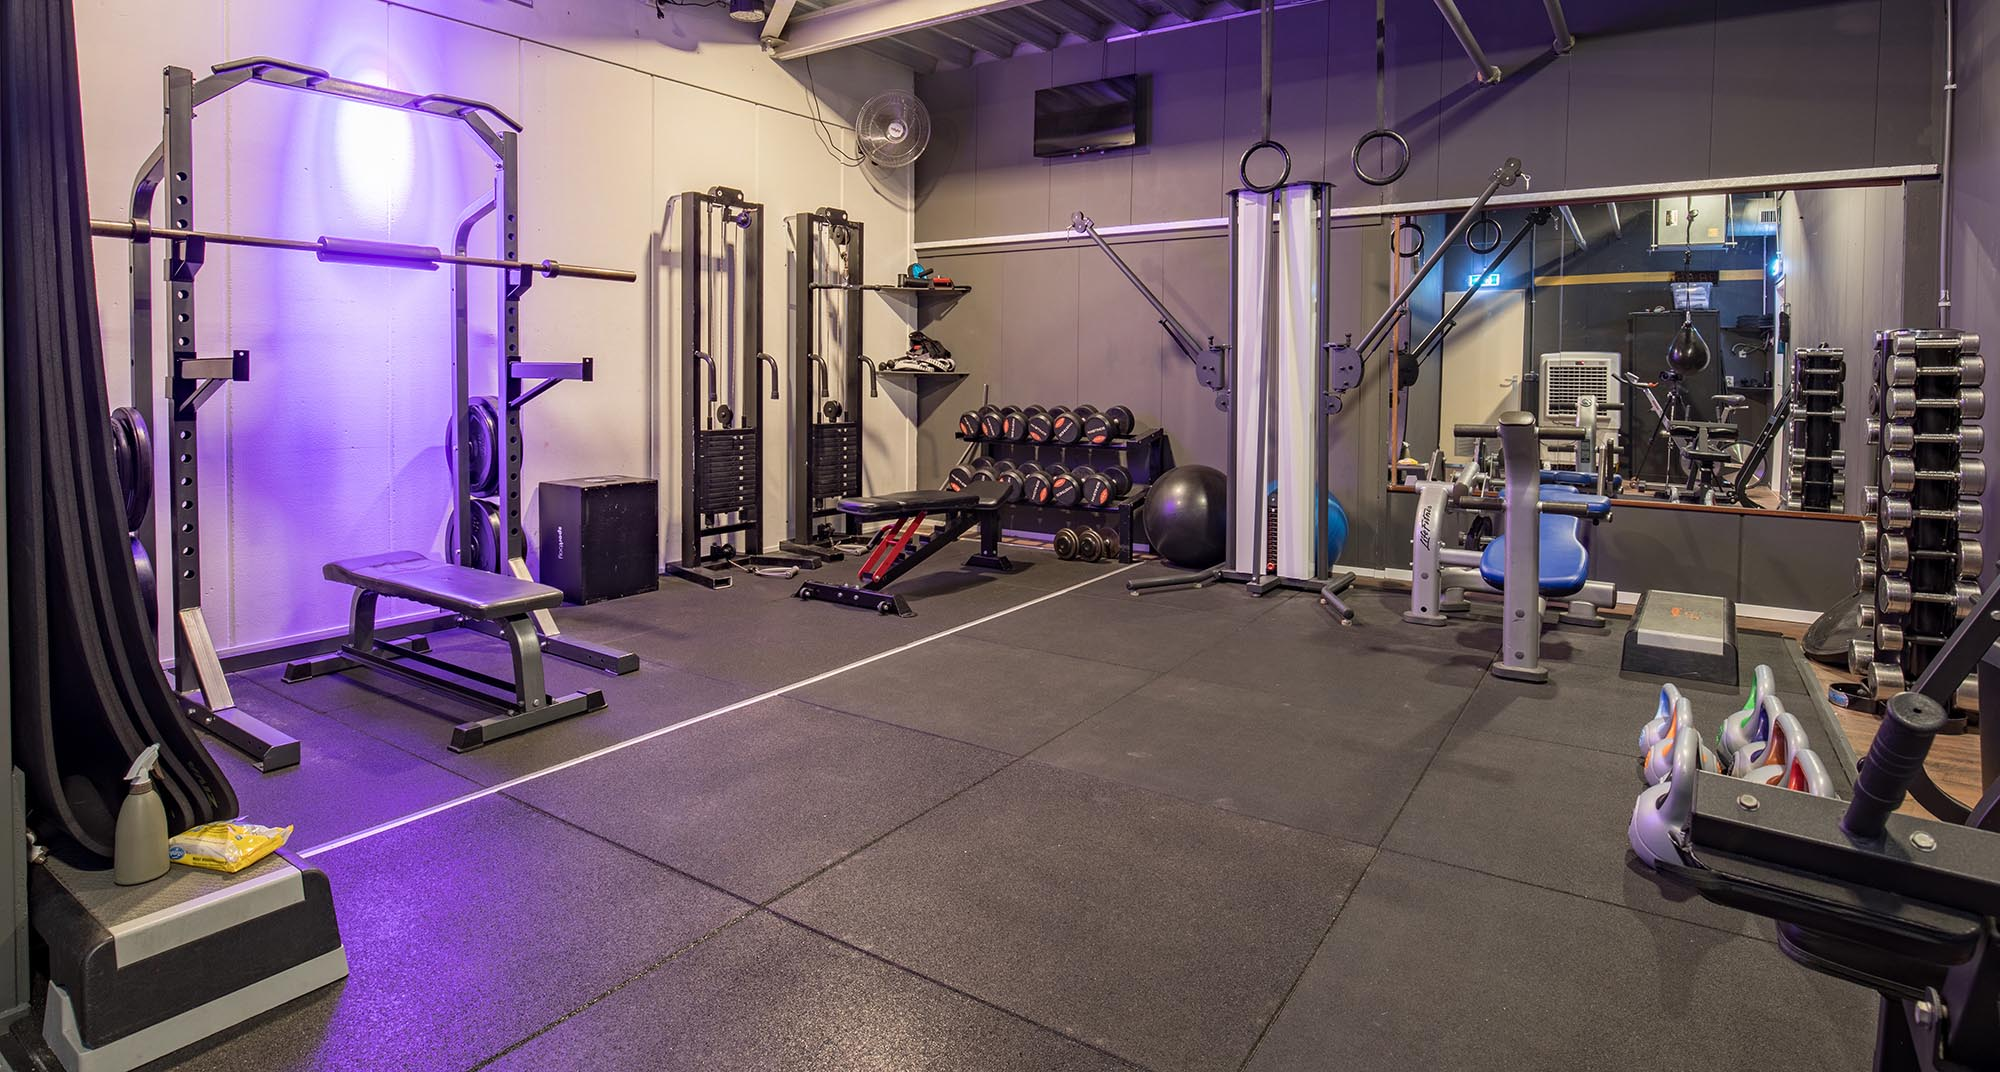 Compound Gym Personal Training